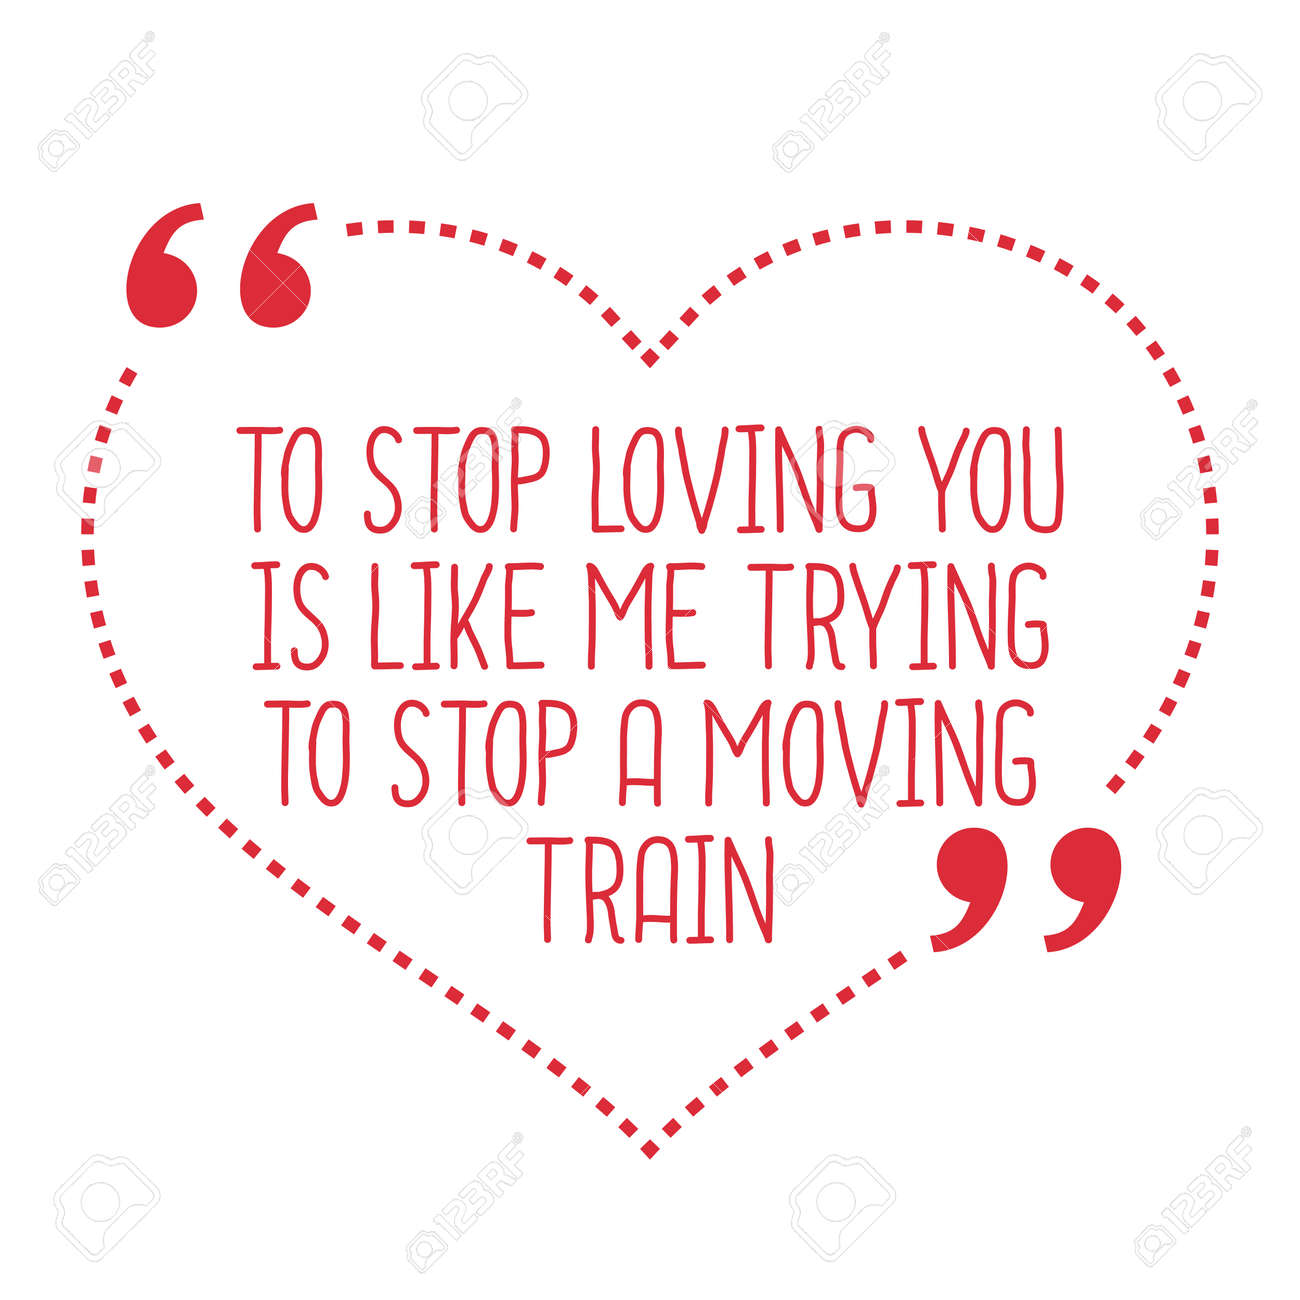 Loving Quote Funny Love Quoteto Stop Loving You Is Like Me Trying To Stop